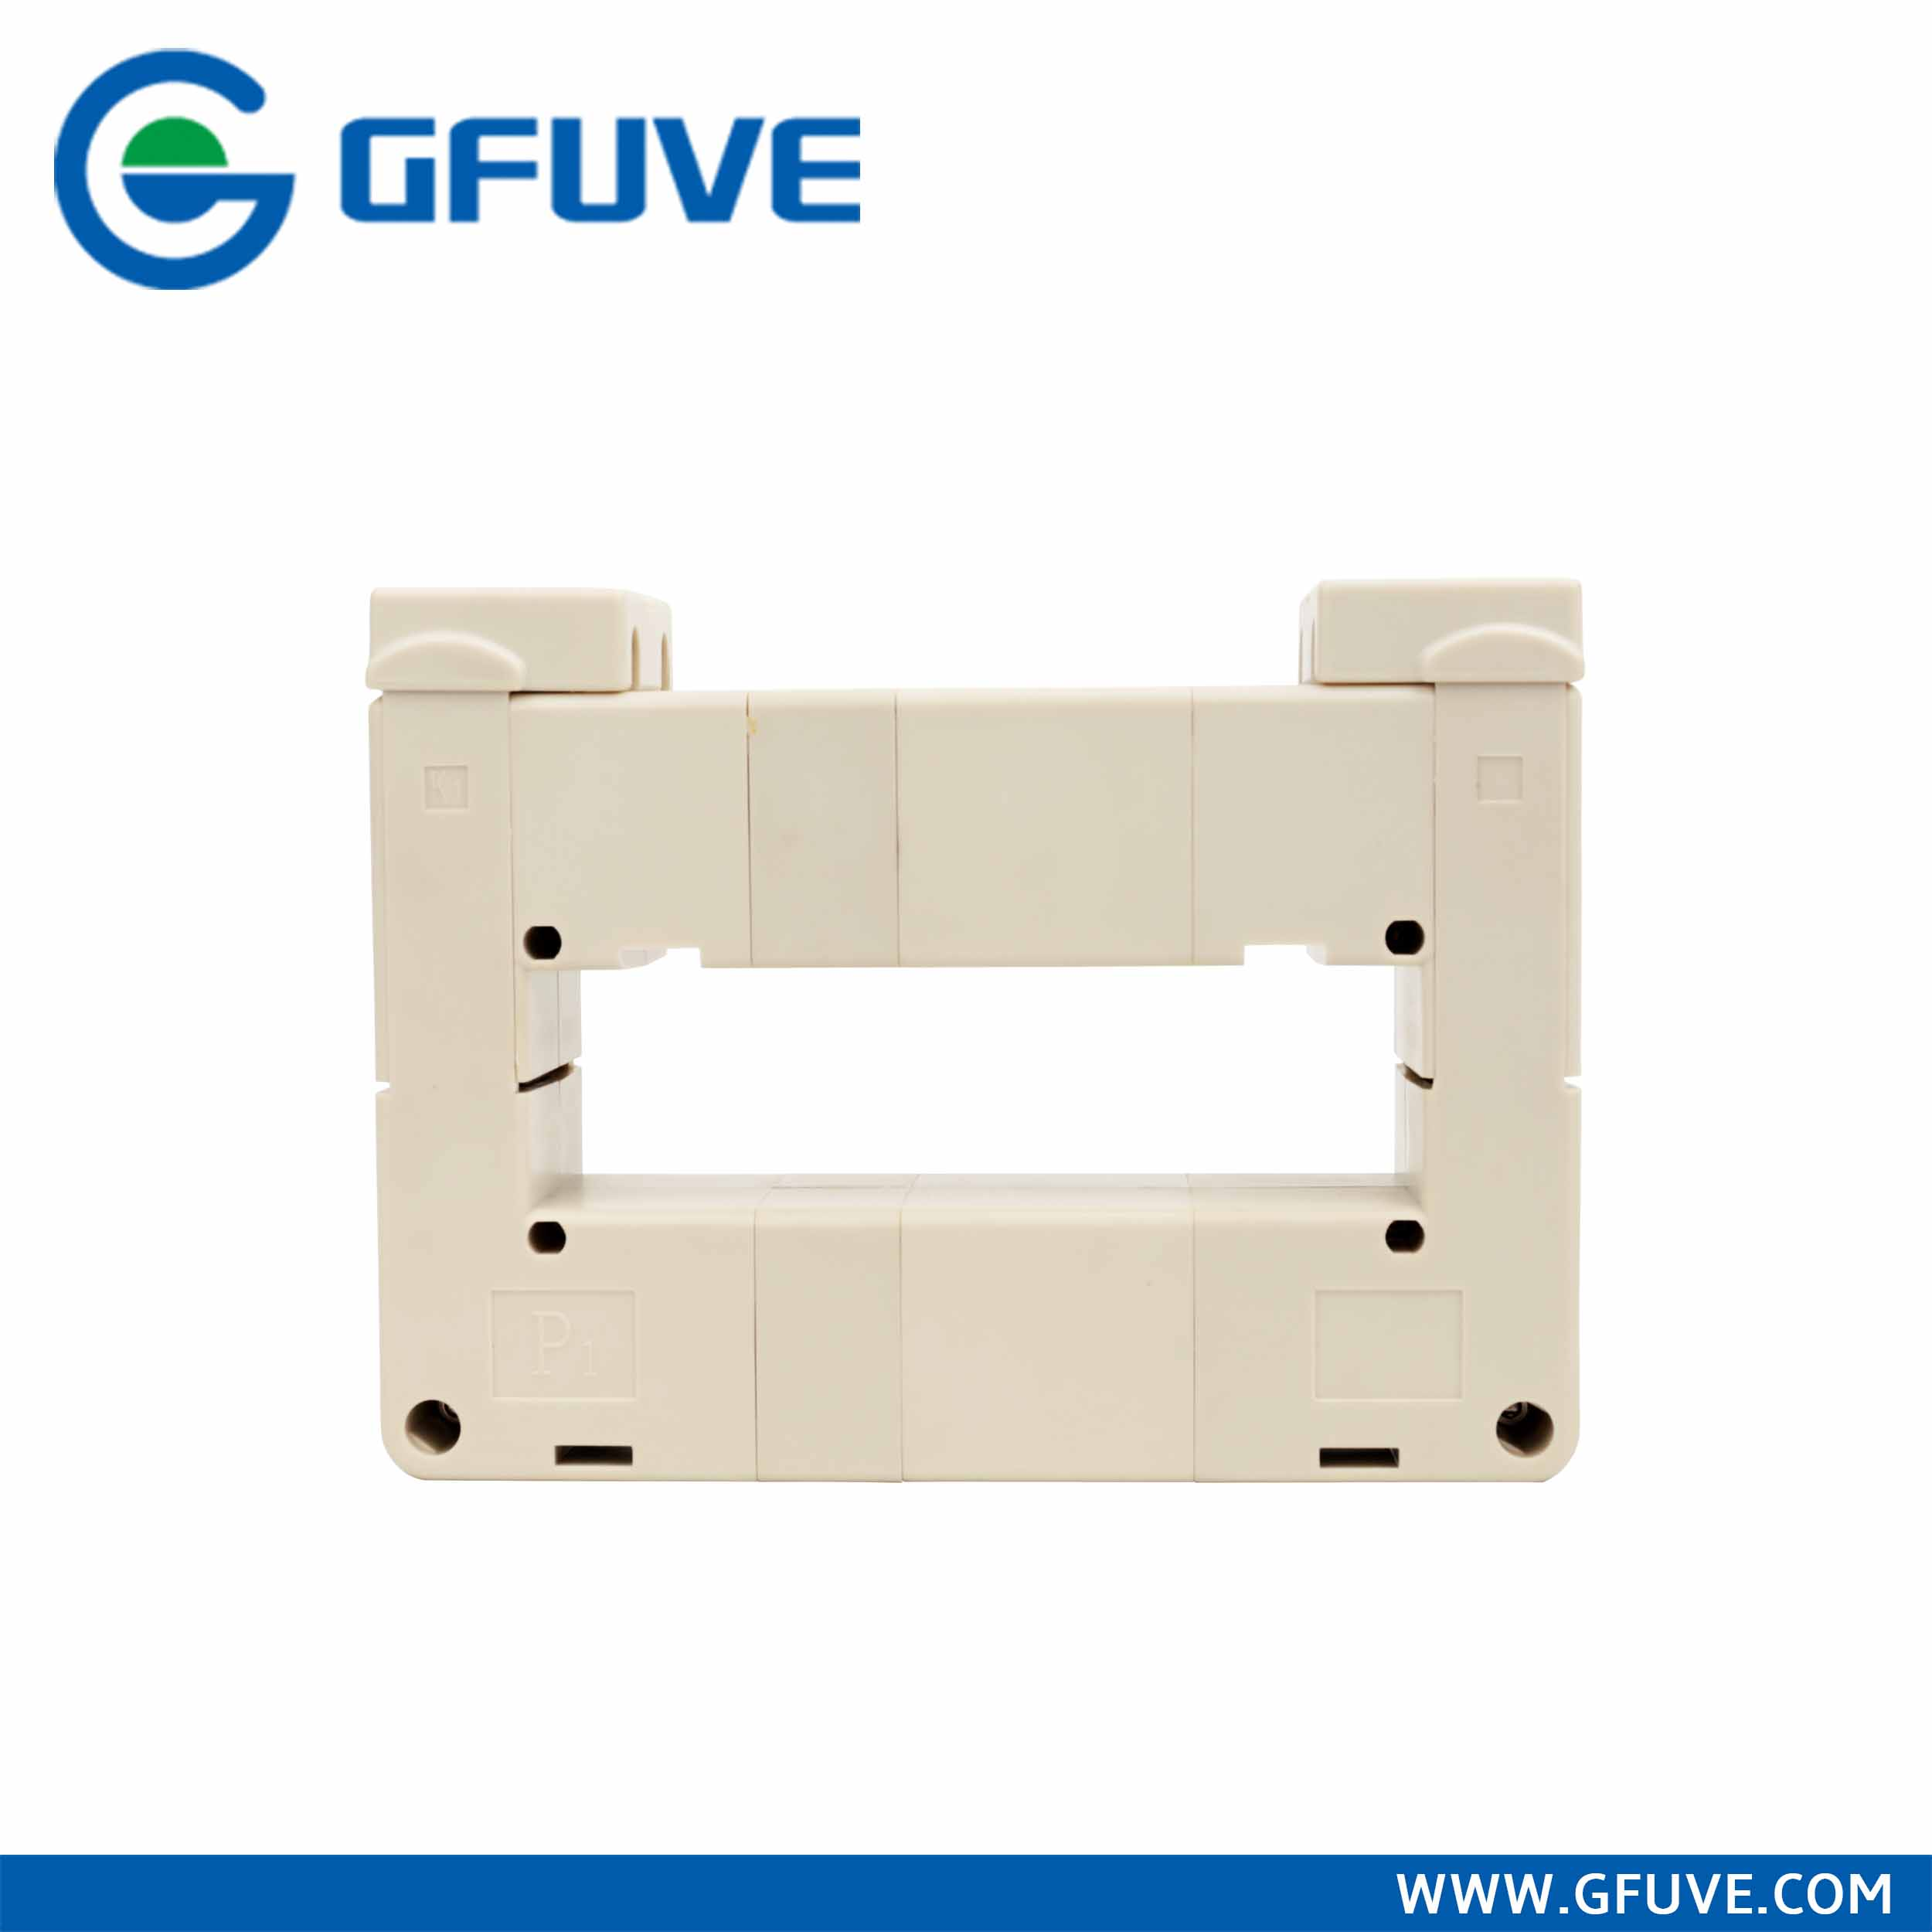 FU120 Busbar Split Core Current Transformer